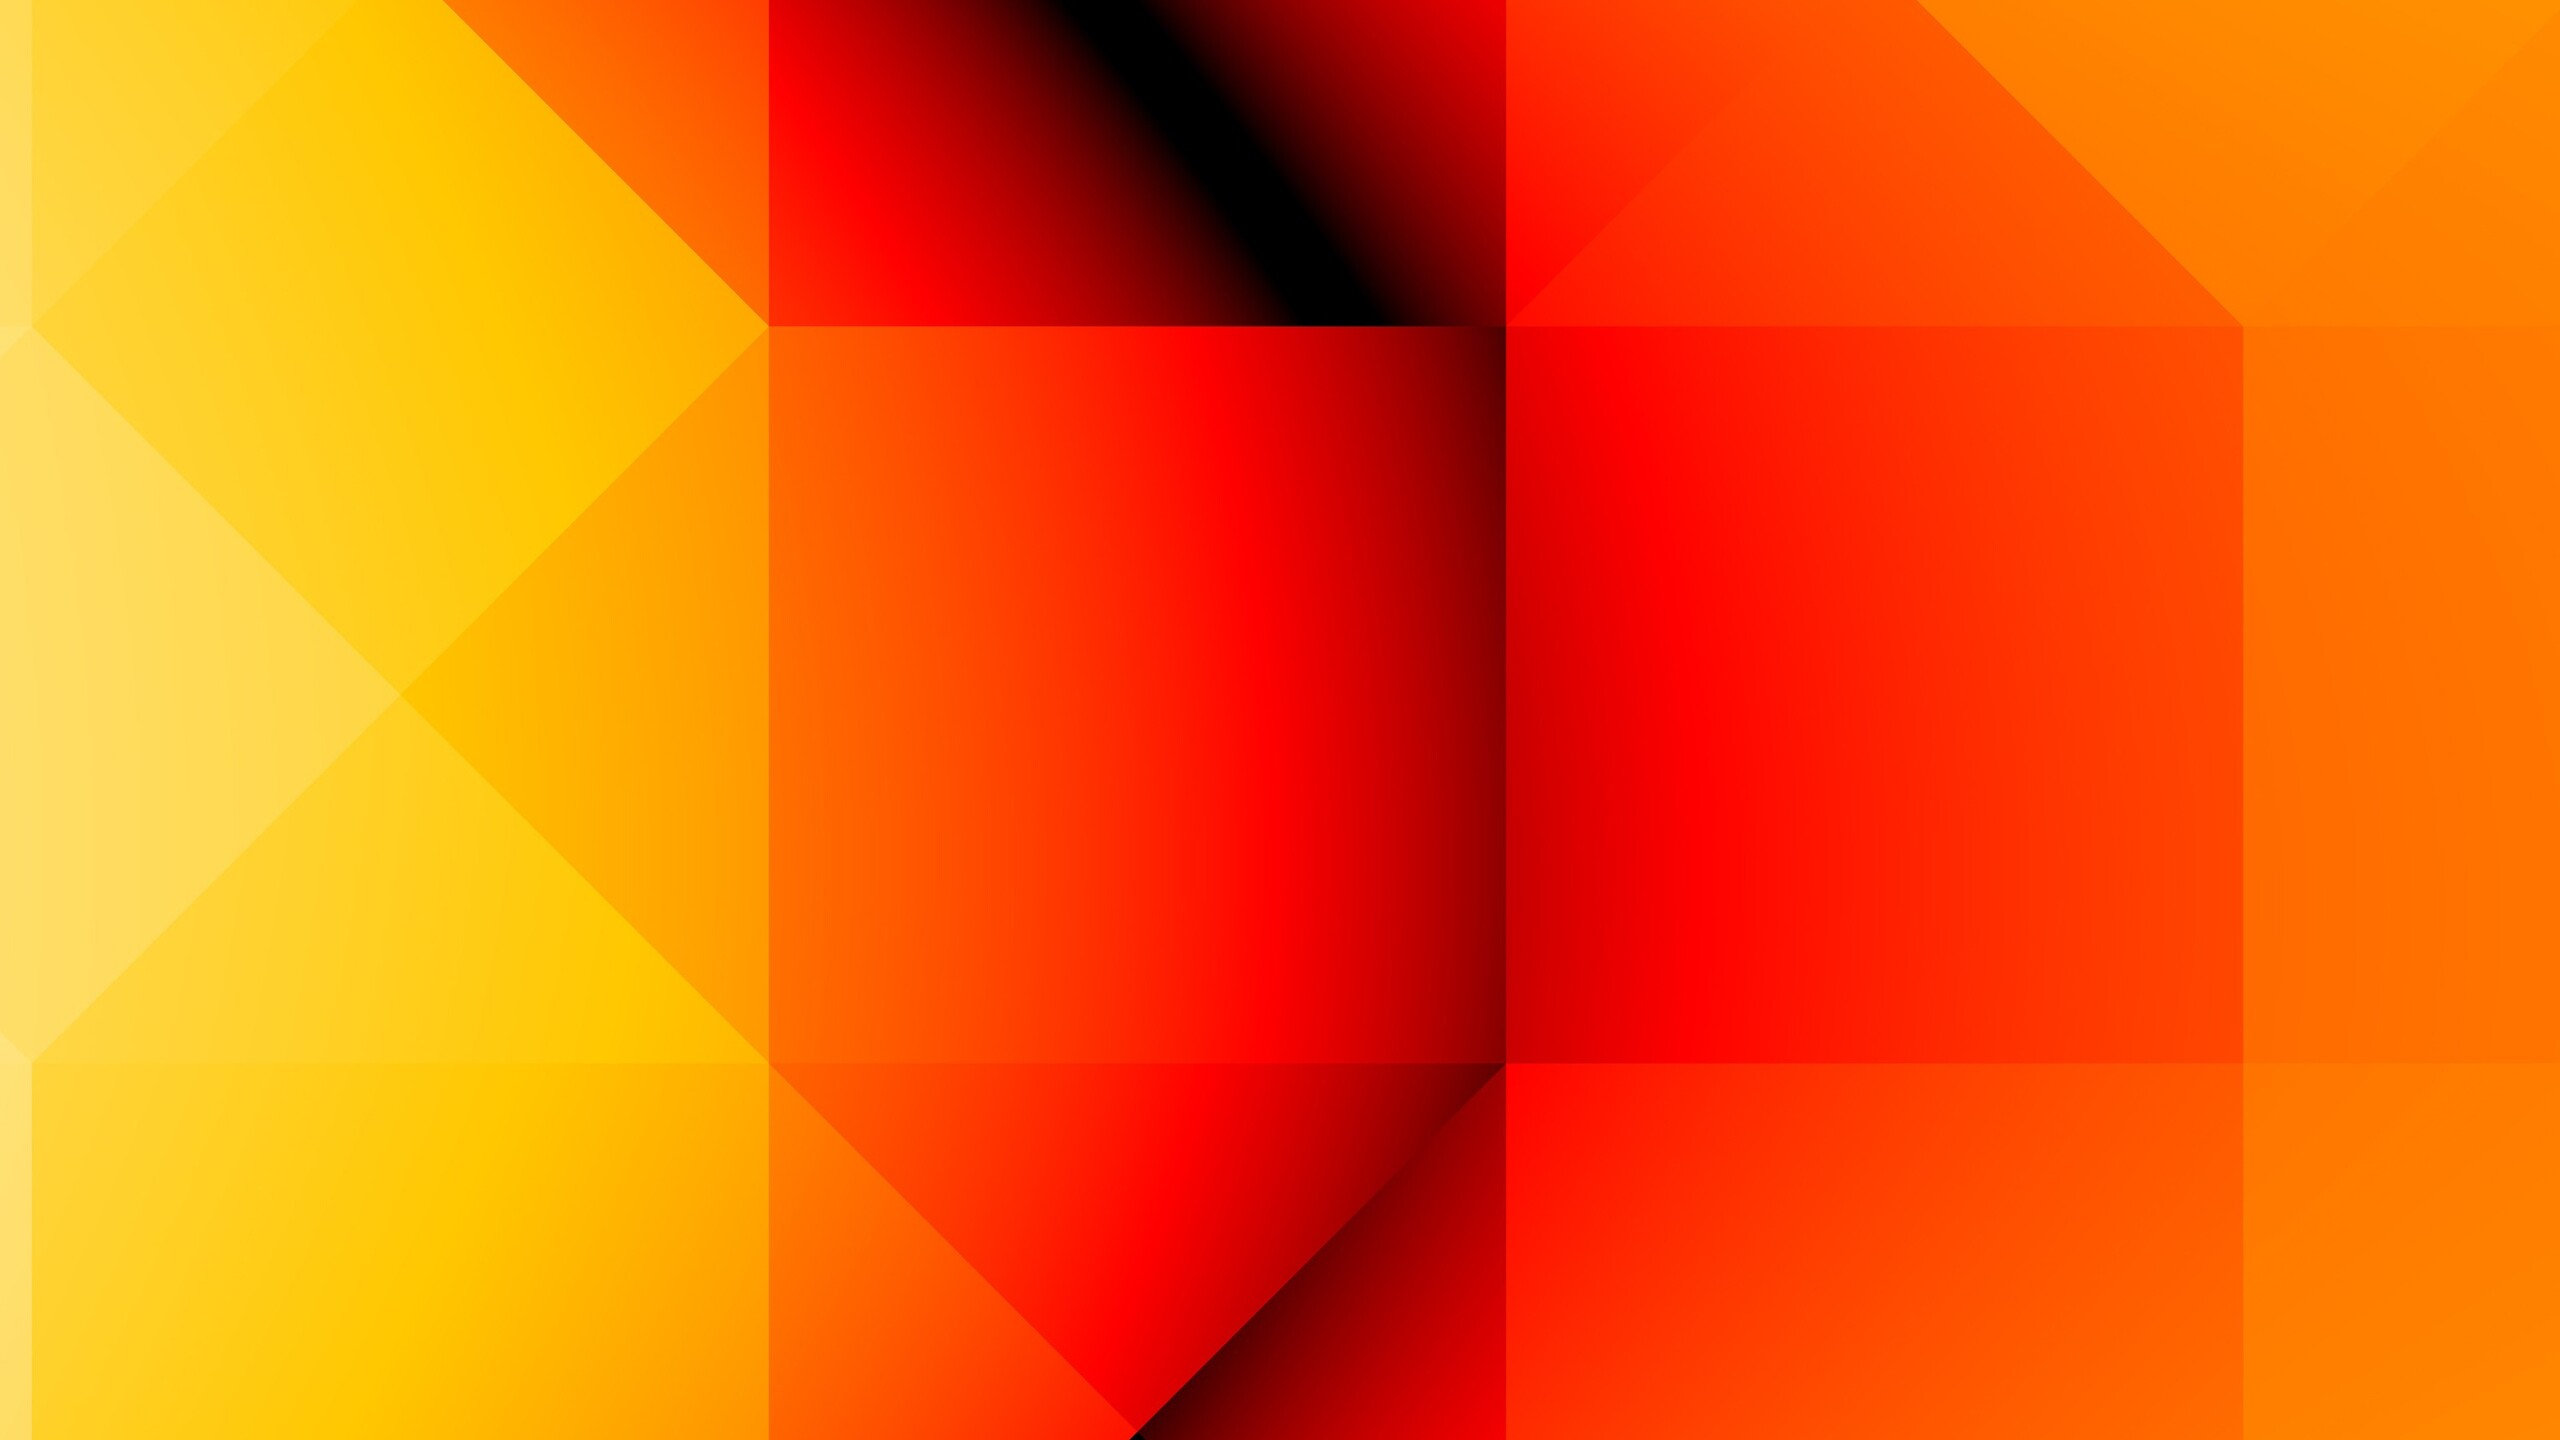 orange-yellow-shapes.jpg